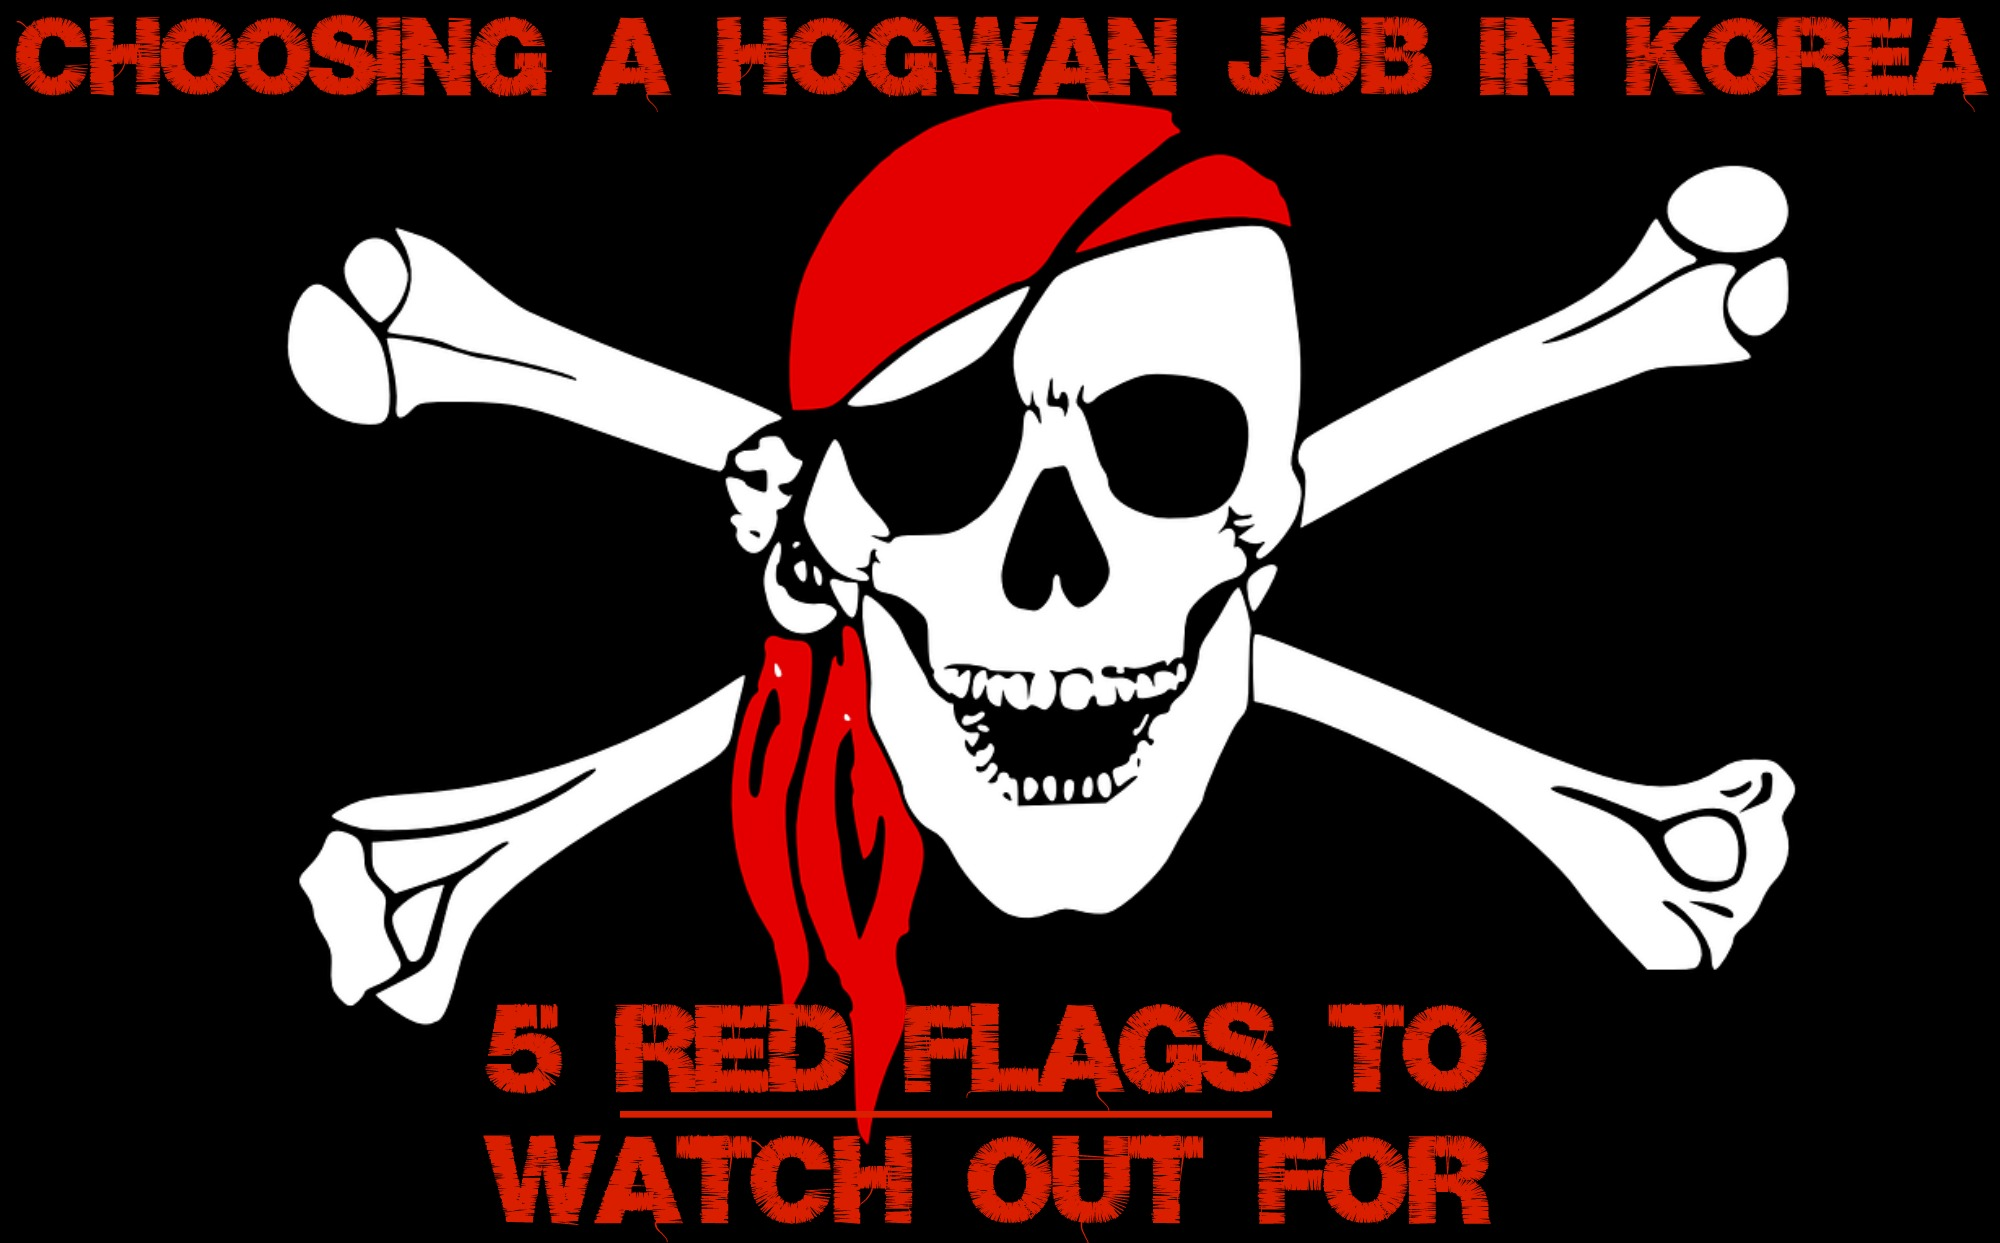 Choosing A Hogwan Job In Korea: 5 Red Flags To Watch Out For